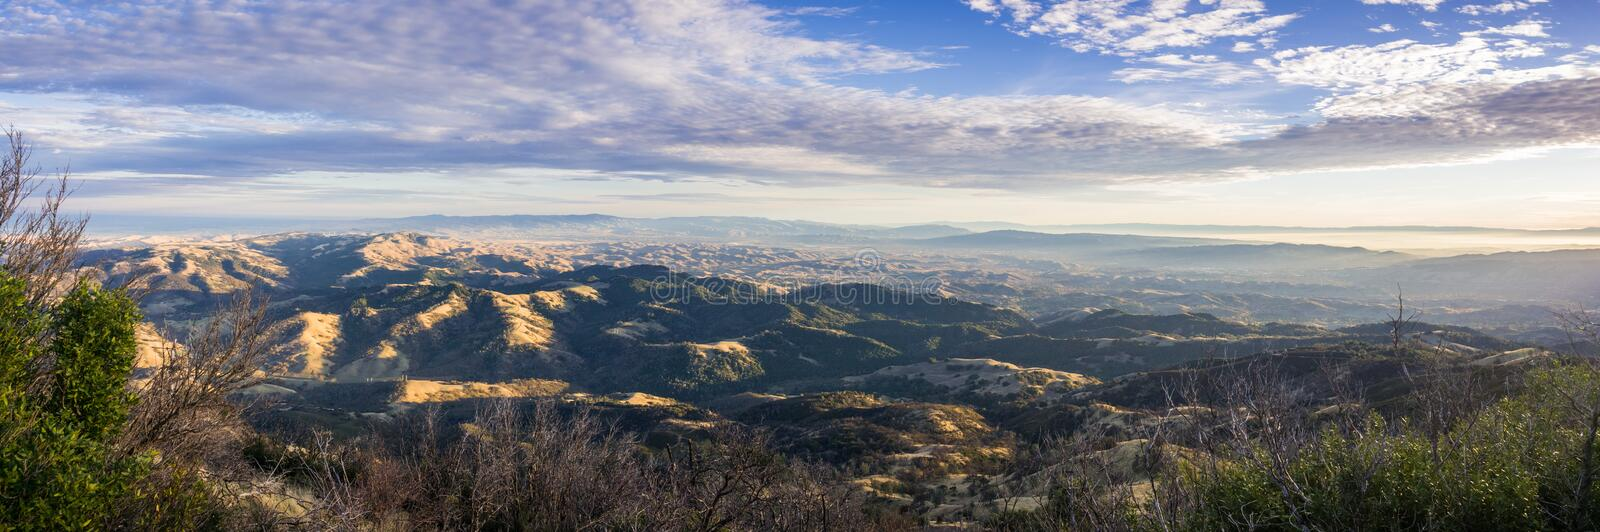 Panoramic view at sunset from the summit of Mt Diablo, Pleasanton, Livermore and the bay covered in fog in the background. Mt Diablo SP, Contra Costa county royalty free stock photos